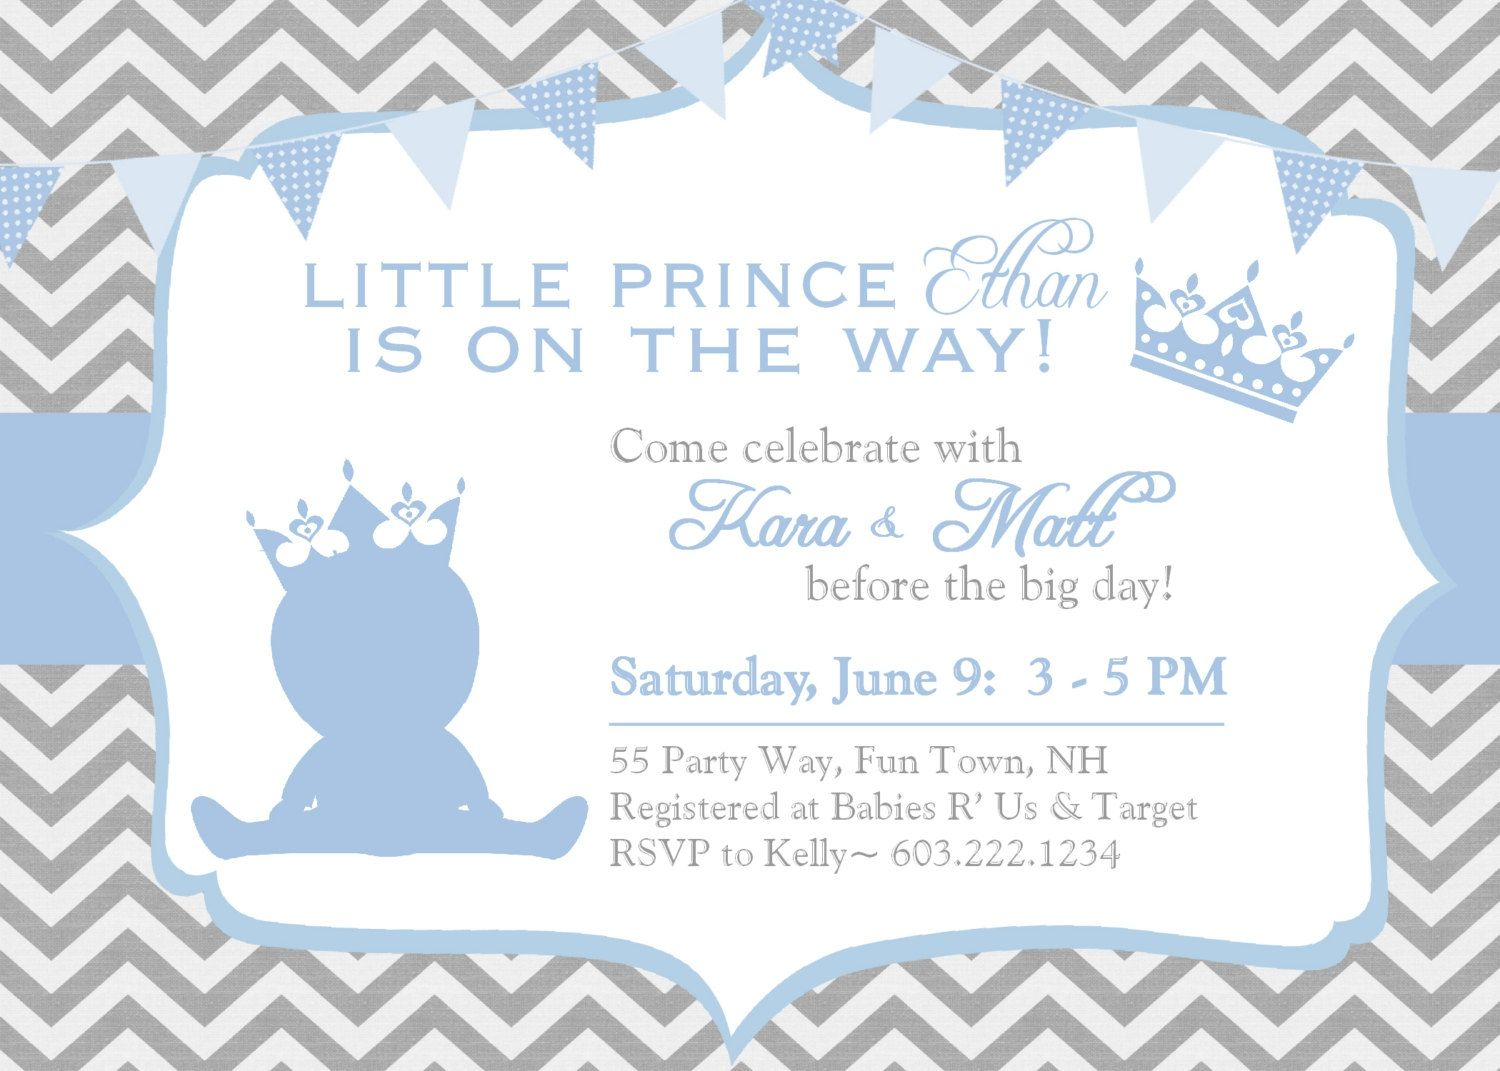 Image for Baby Boy Baby Shower Invitations Sayings | bekane ...